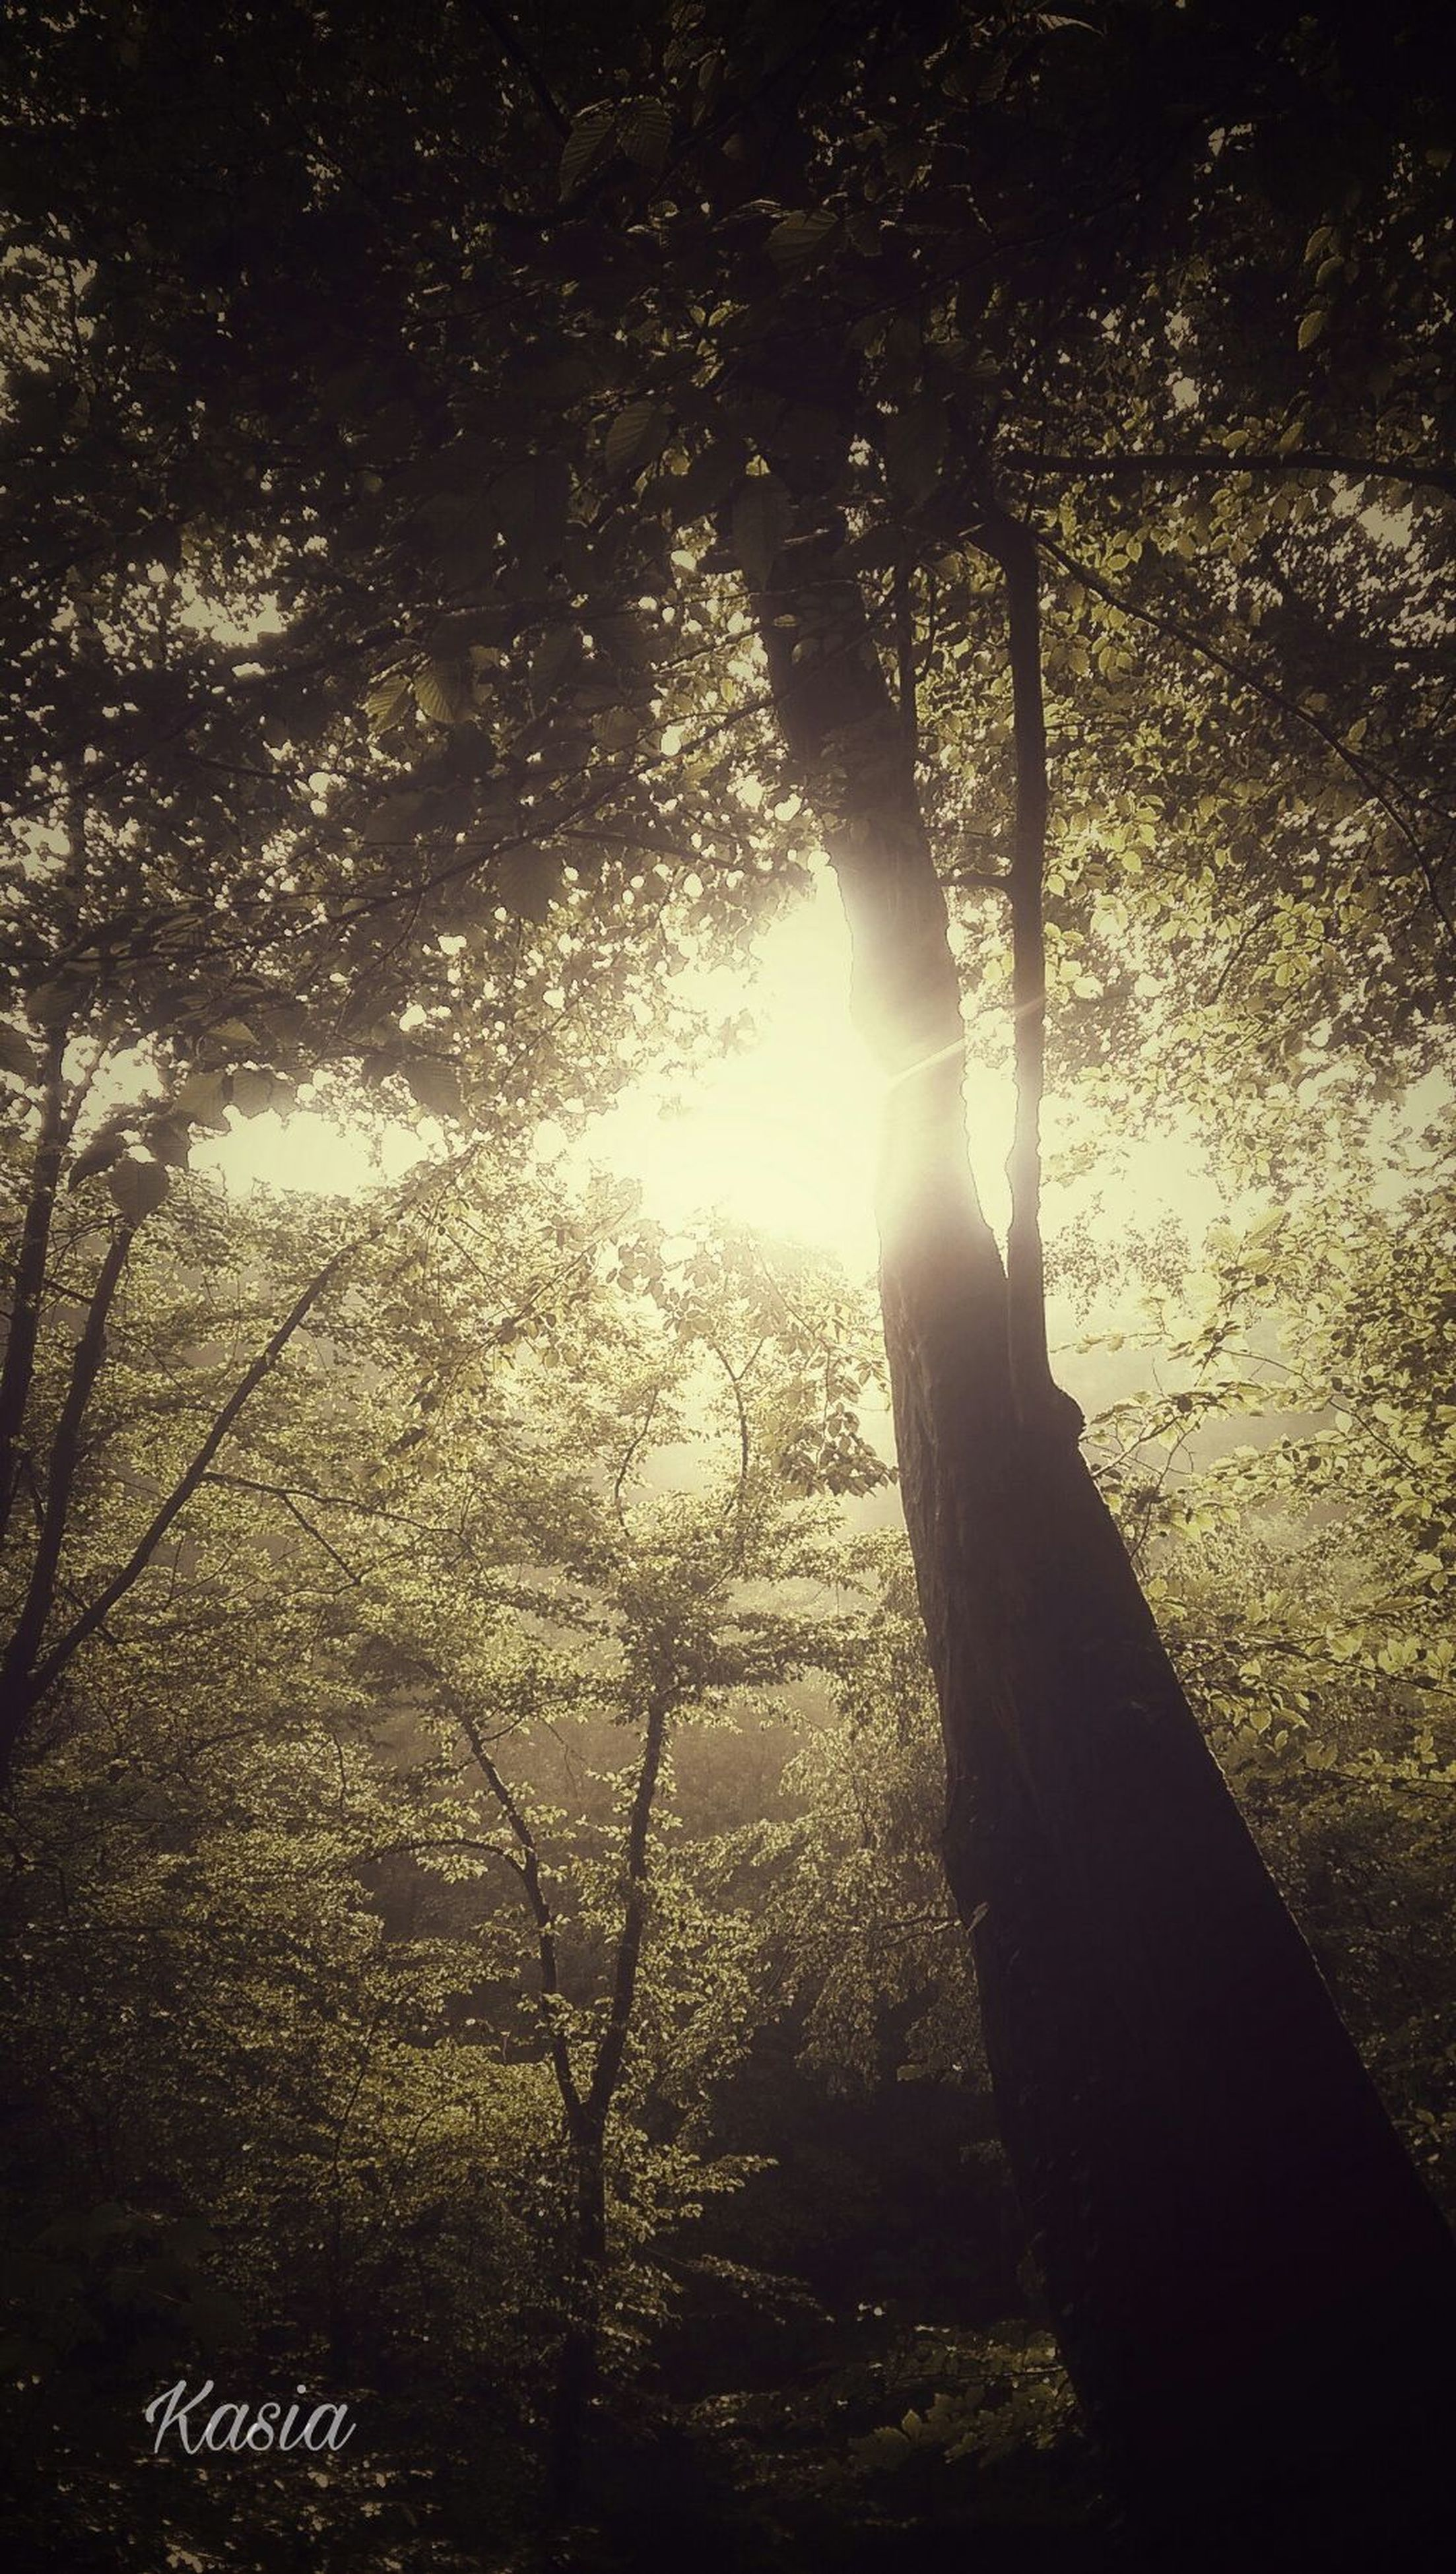 sunlight, no people, nature, backgrounds, sunbeam, tree, indoors, close-up, sky, day, frosted glass